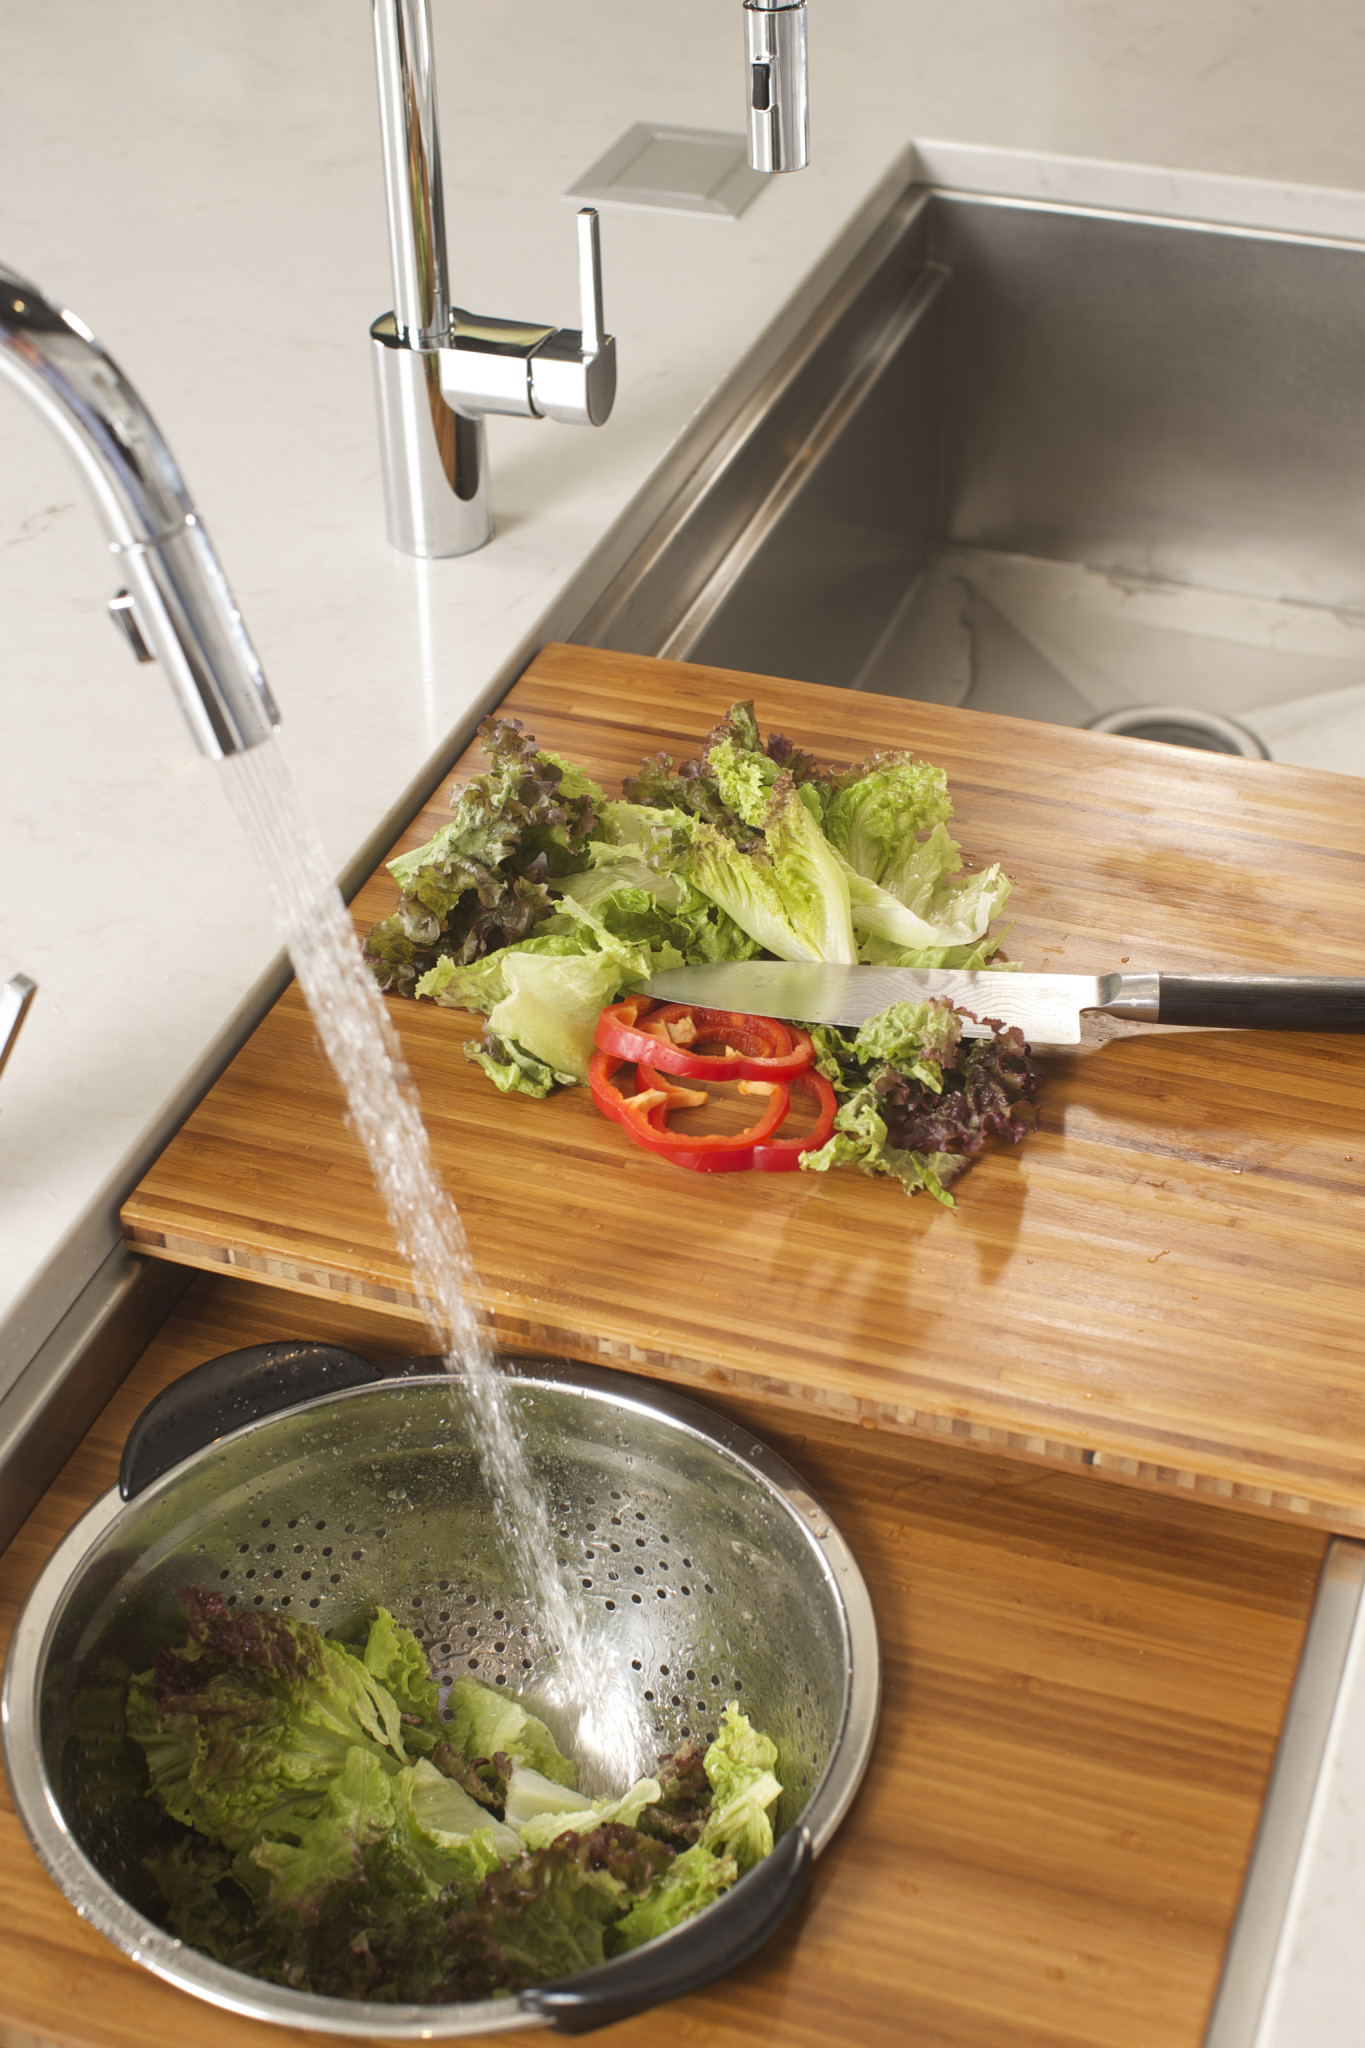 9/25/14 6:33:44 PM -- Kitchen interiors of The Galley sink at Metro Appliance for Kitchen Ideas/The Galley  Photo by Shane Bevel